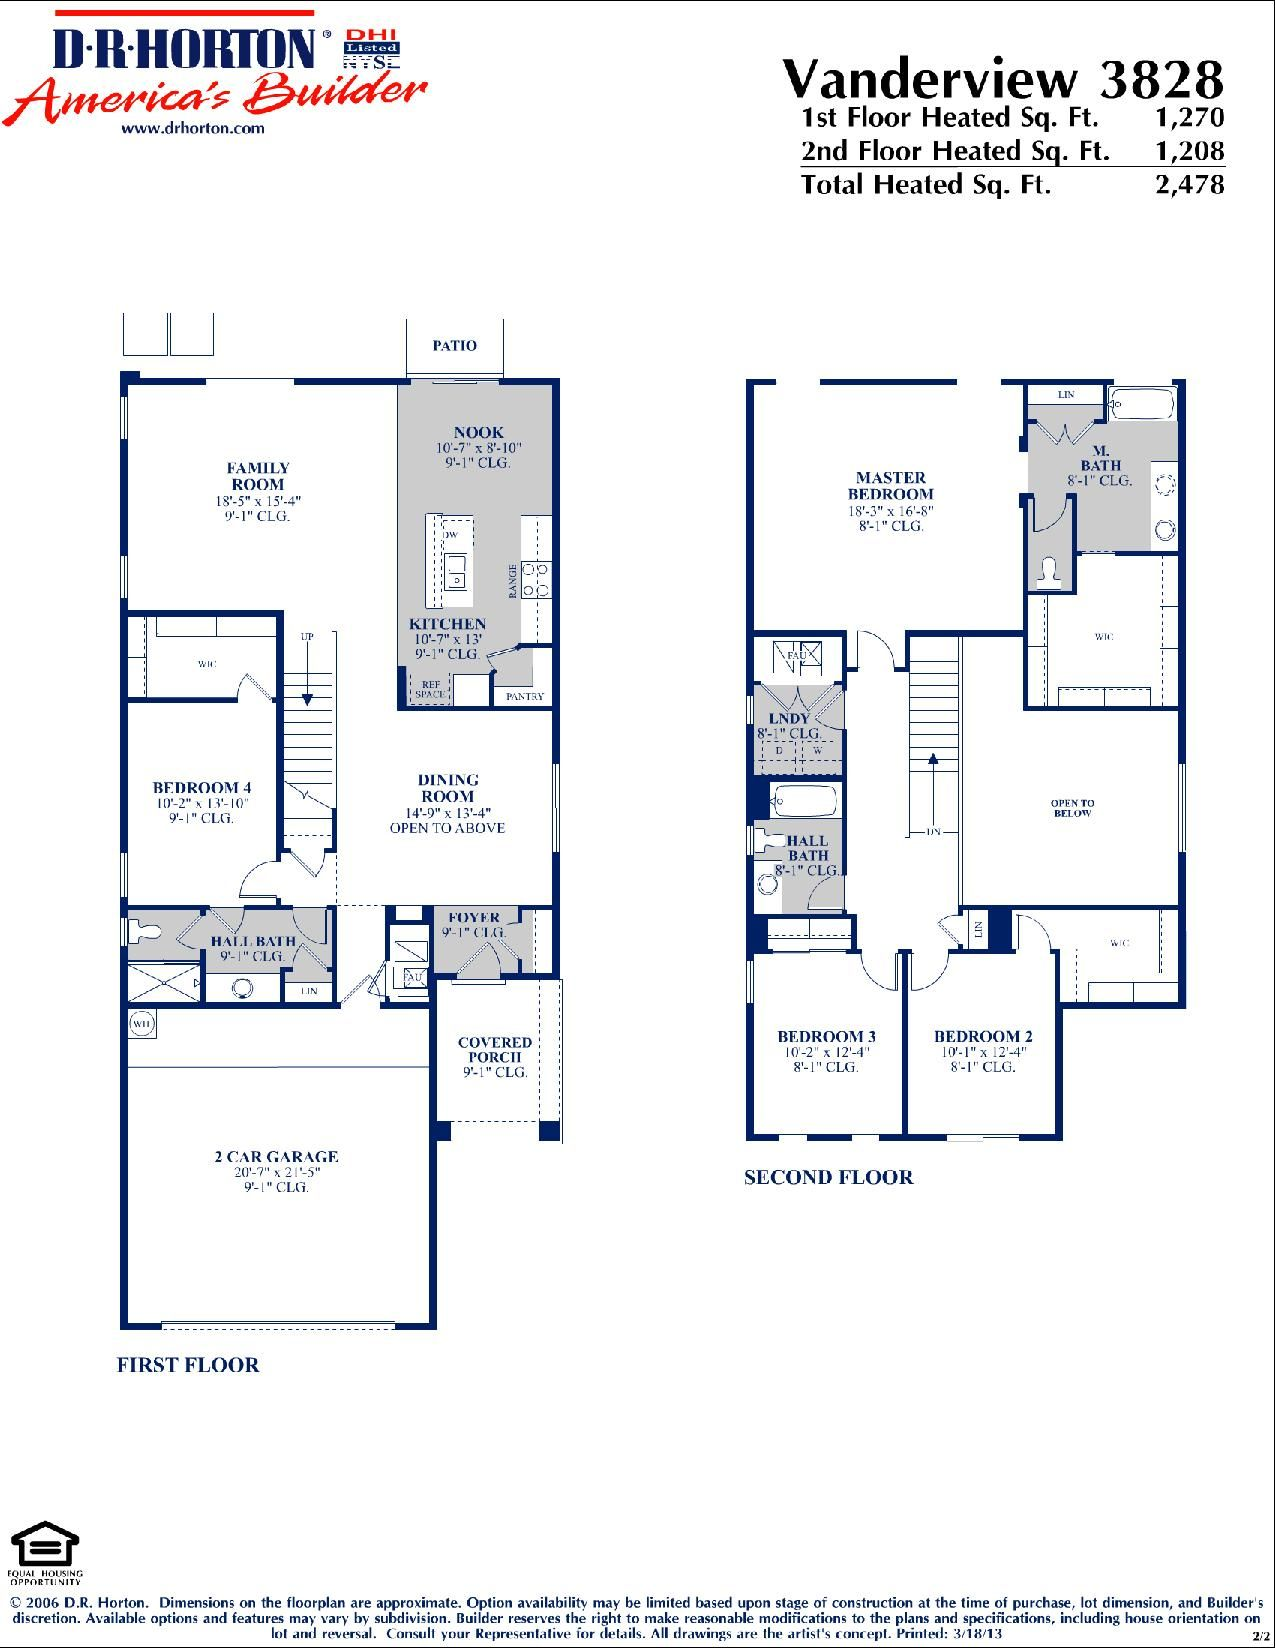 dr horton vanderview floor plan via www nmhometeam com dr horton real estate dr horton vanderview floor plan via www nmhometeam com